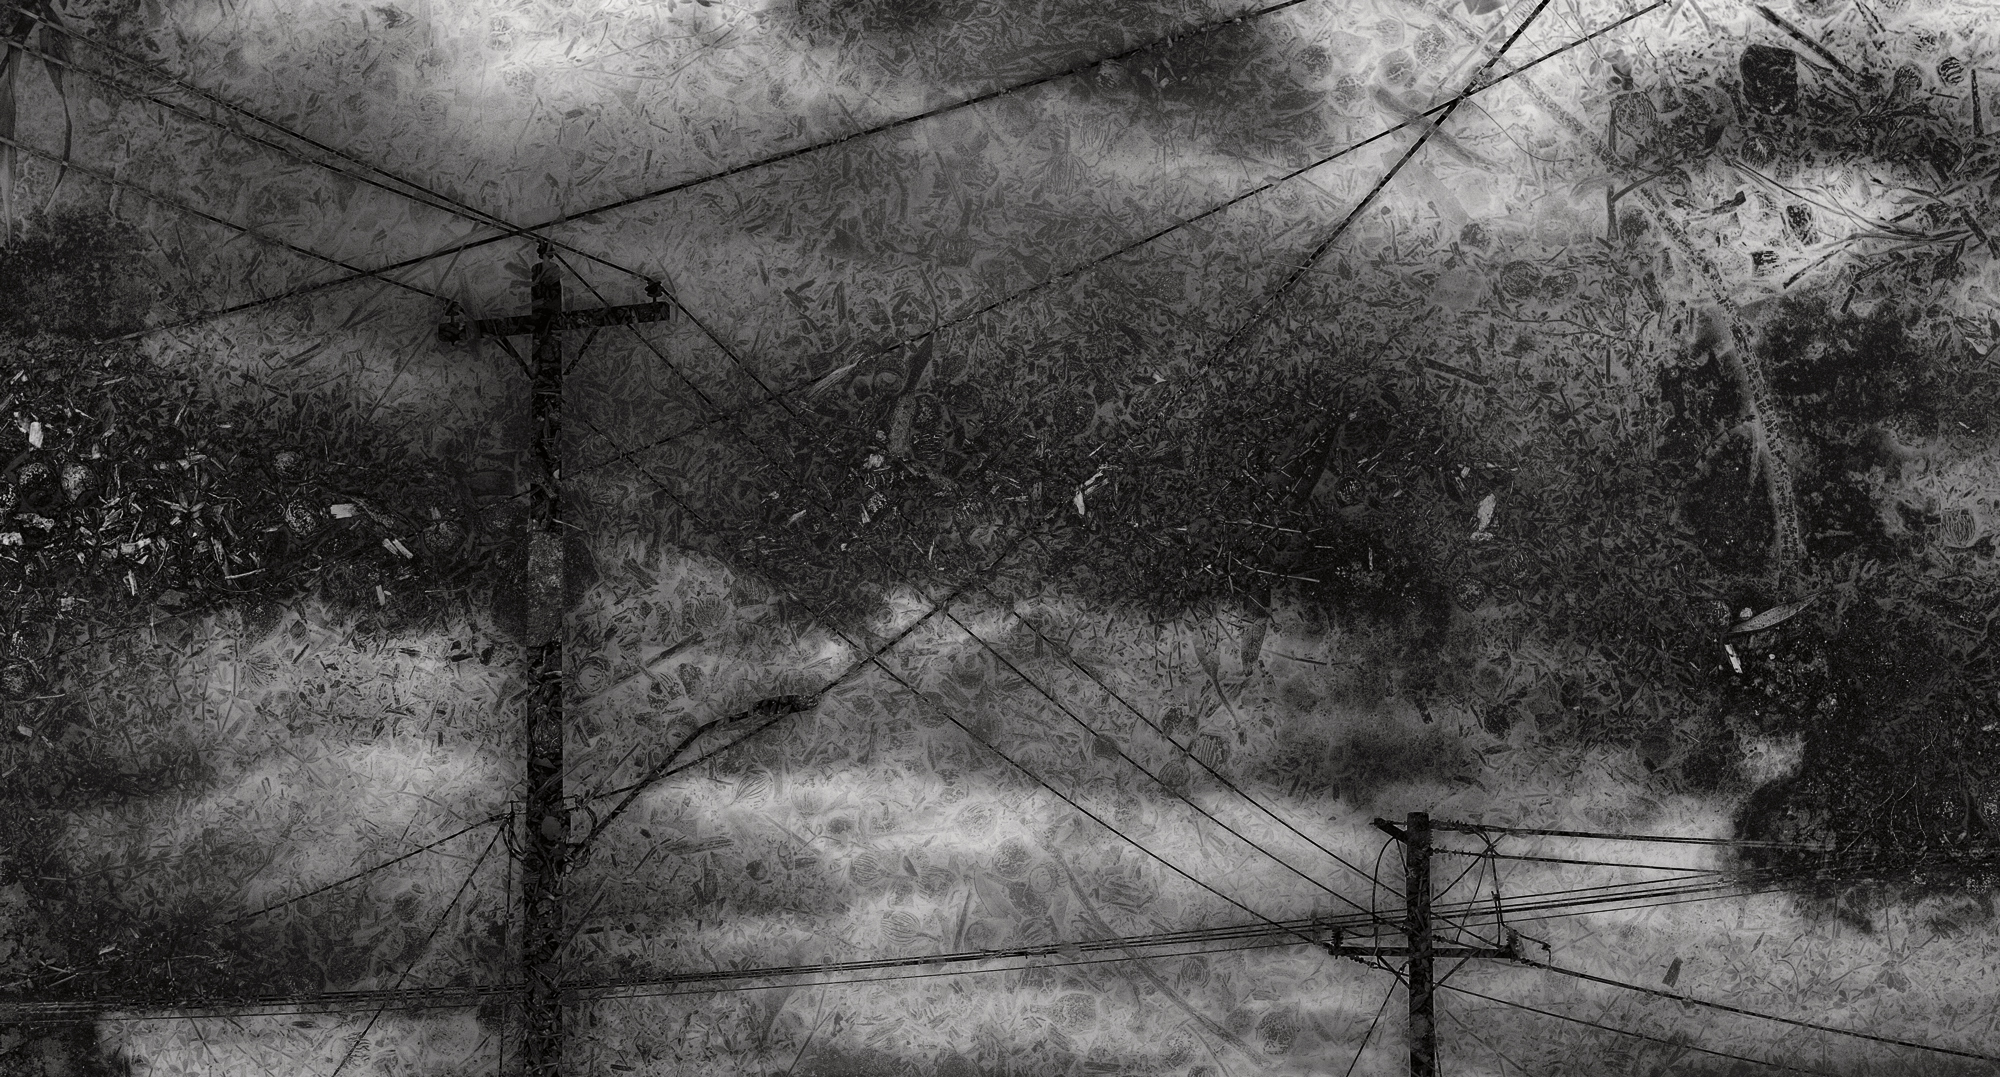 Enronned 2016 Image size Combination of two images from Brunswick. Exhibited at  Alternating Current Gallery February 2017 Scratch Art Space Sydney May 2017 for the Head On Festival Bakery Gallery May-June 2017 Arthouse Gallery Ballarat for the Ballarat International Foto Biennale August- September 2017 Archival digital print on Canson Platine Rag Signed and numbered on print margin with certificate attached to rear of frame. © Christopher Sheils